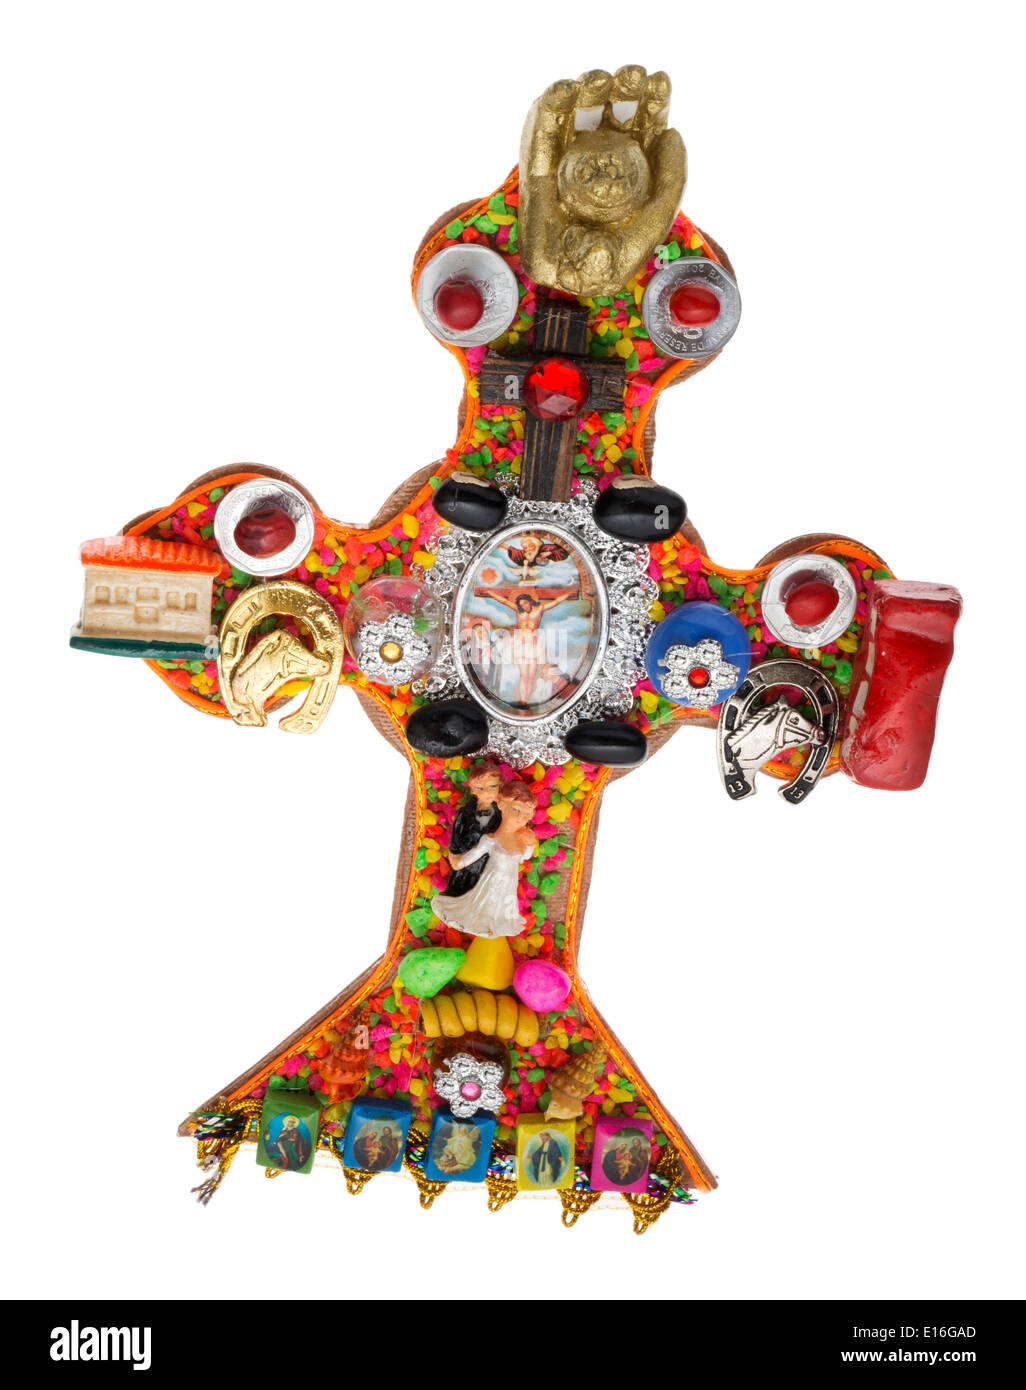 Bolivian christian cross but with pagan icons and symbols added bolivian christian cross but with pagan icons and symbols added biocorpaavc Gallery